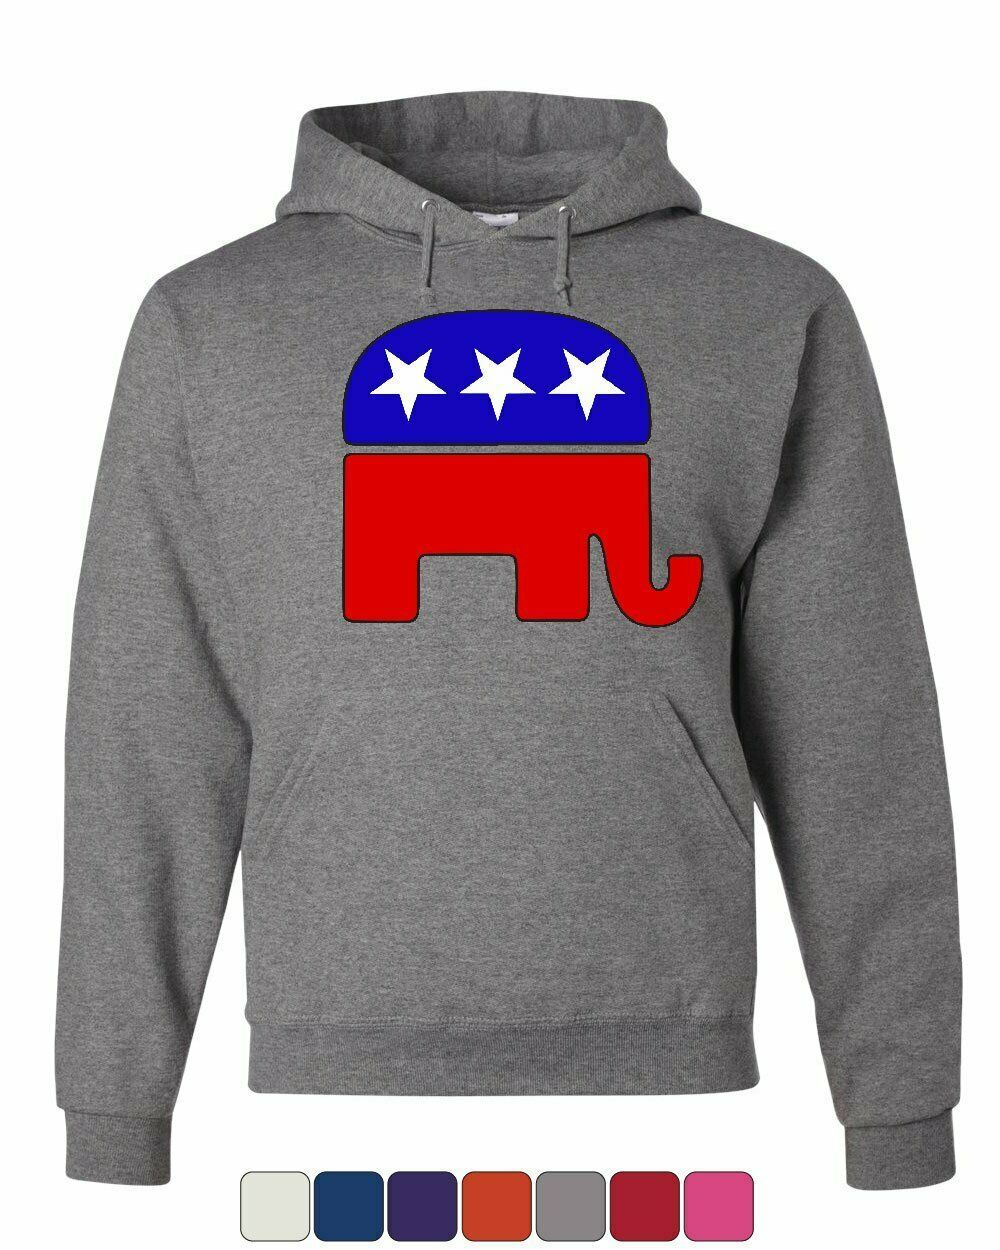 Republican Party Elephant Logo Hoodie Political Conservative Sweatshirt - $23.72 - $37.99